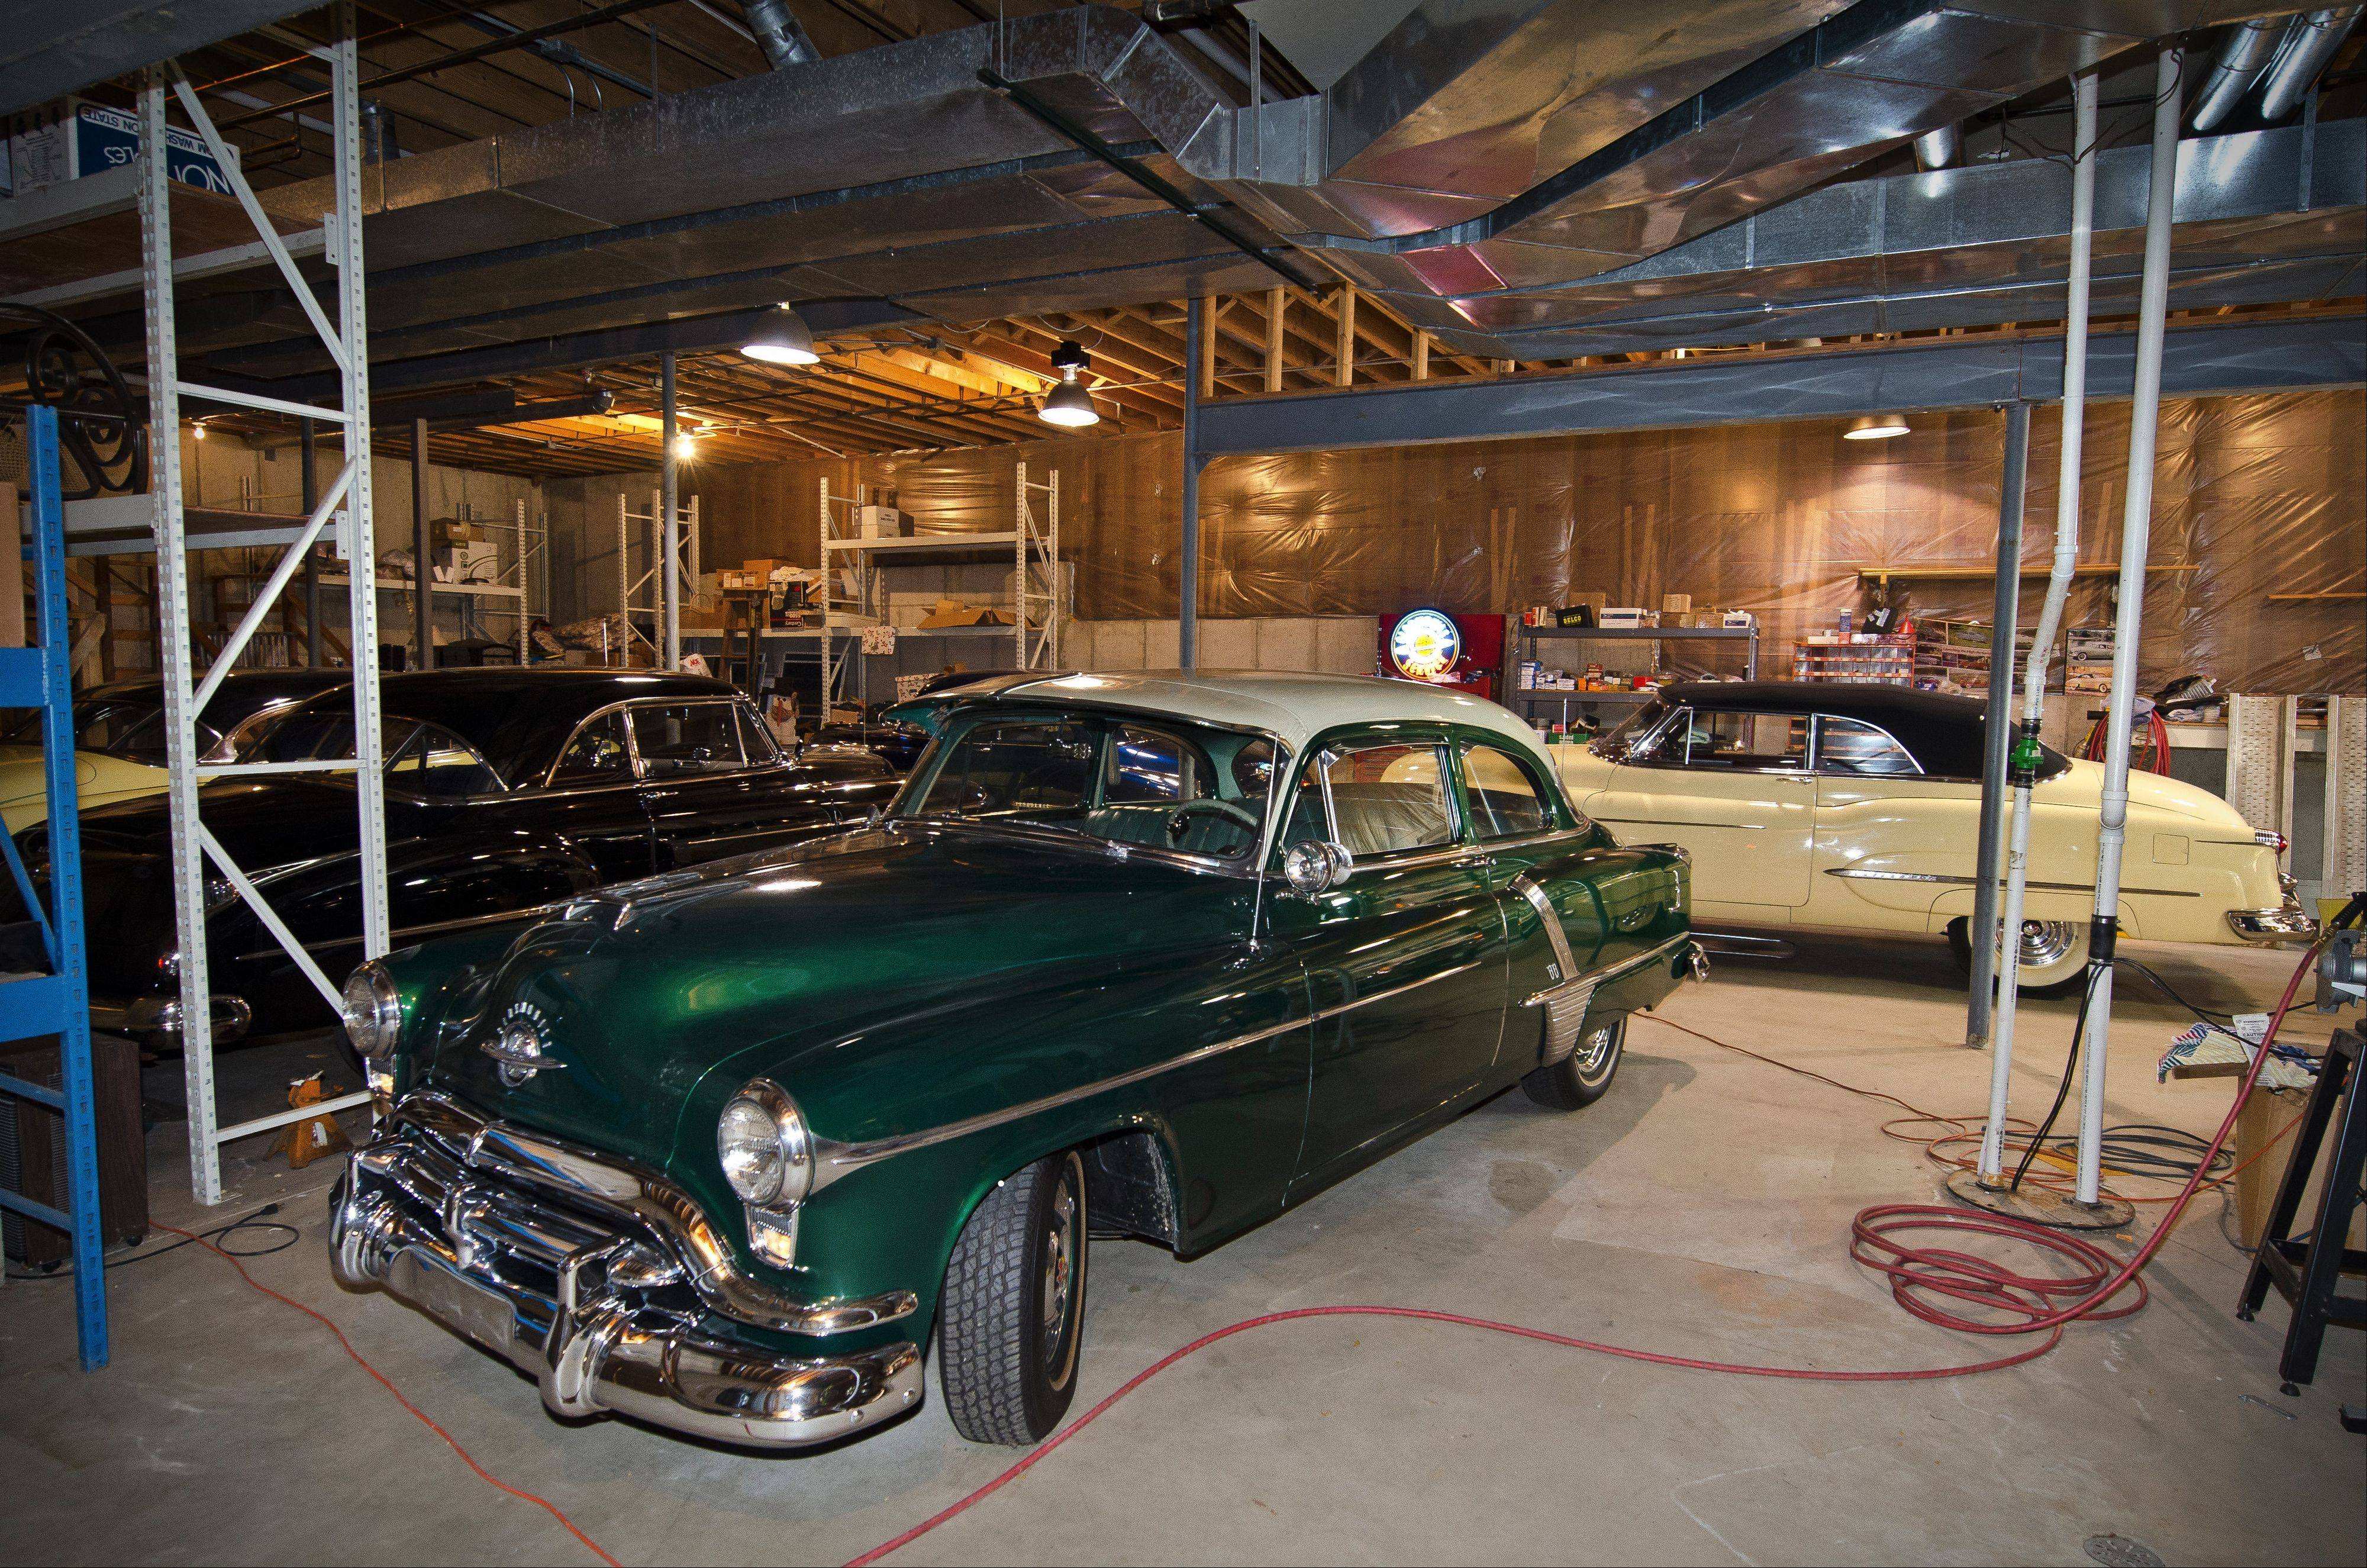 This Alder Green 1952 Olds is like one Albrecht's brother owned, and which Albrecht drove when he was learning to drive.